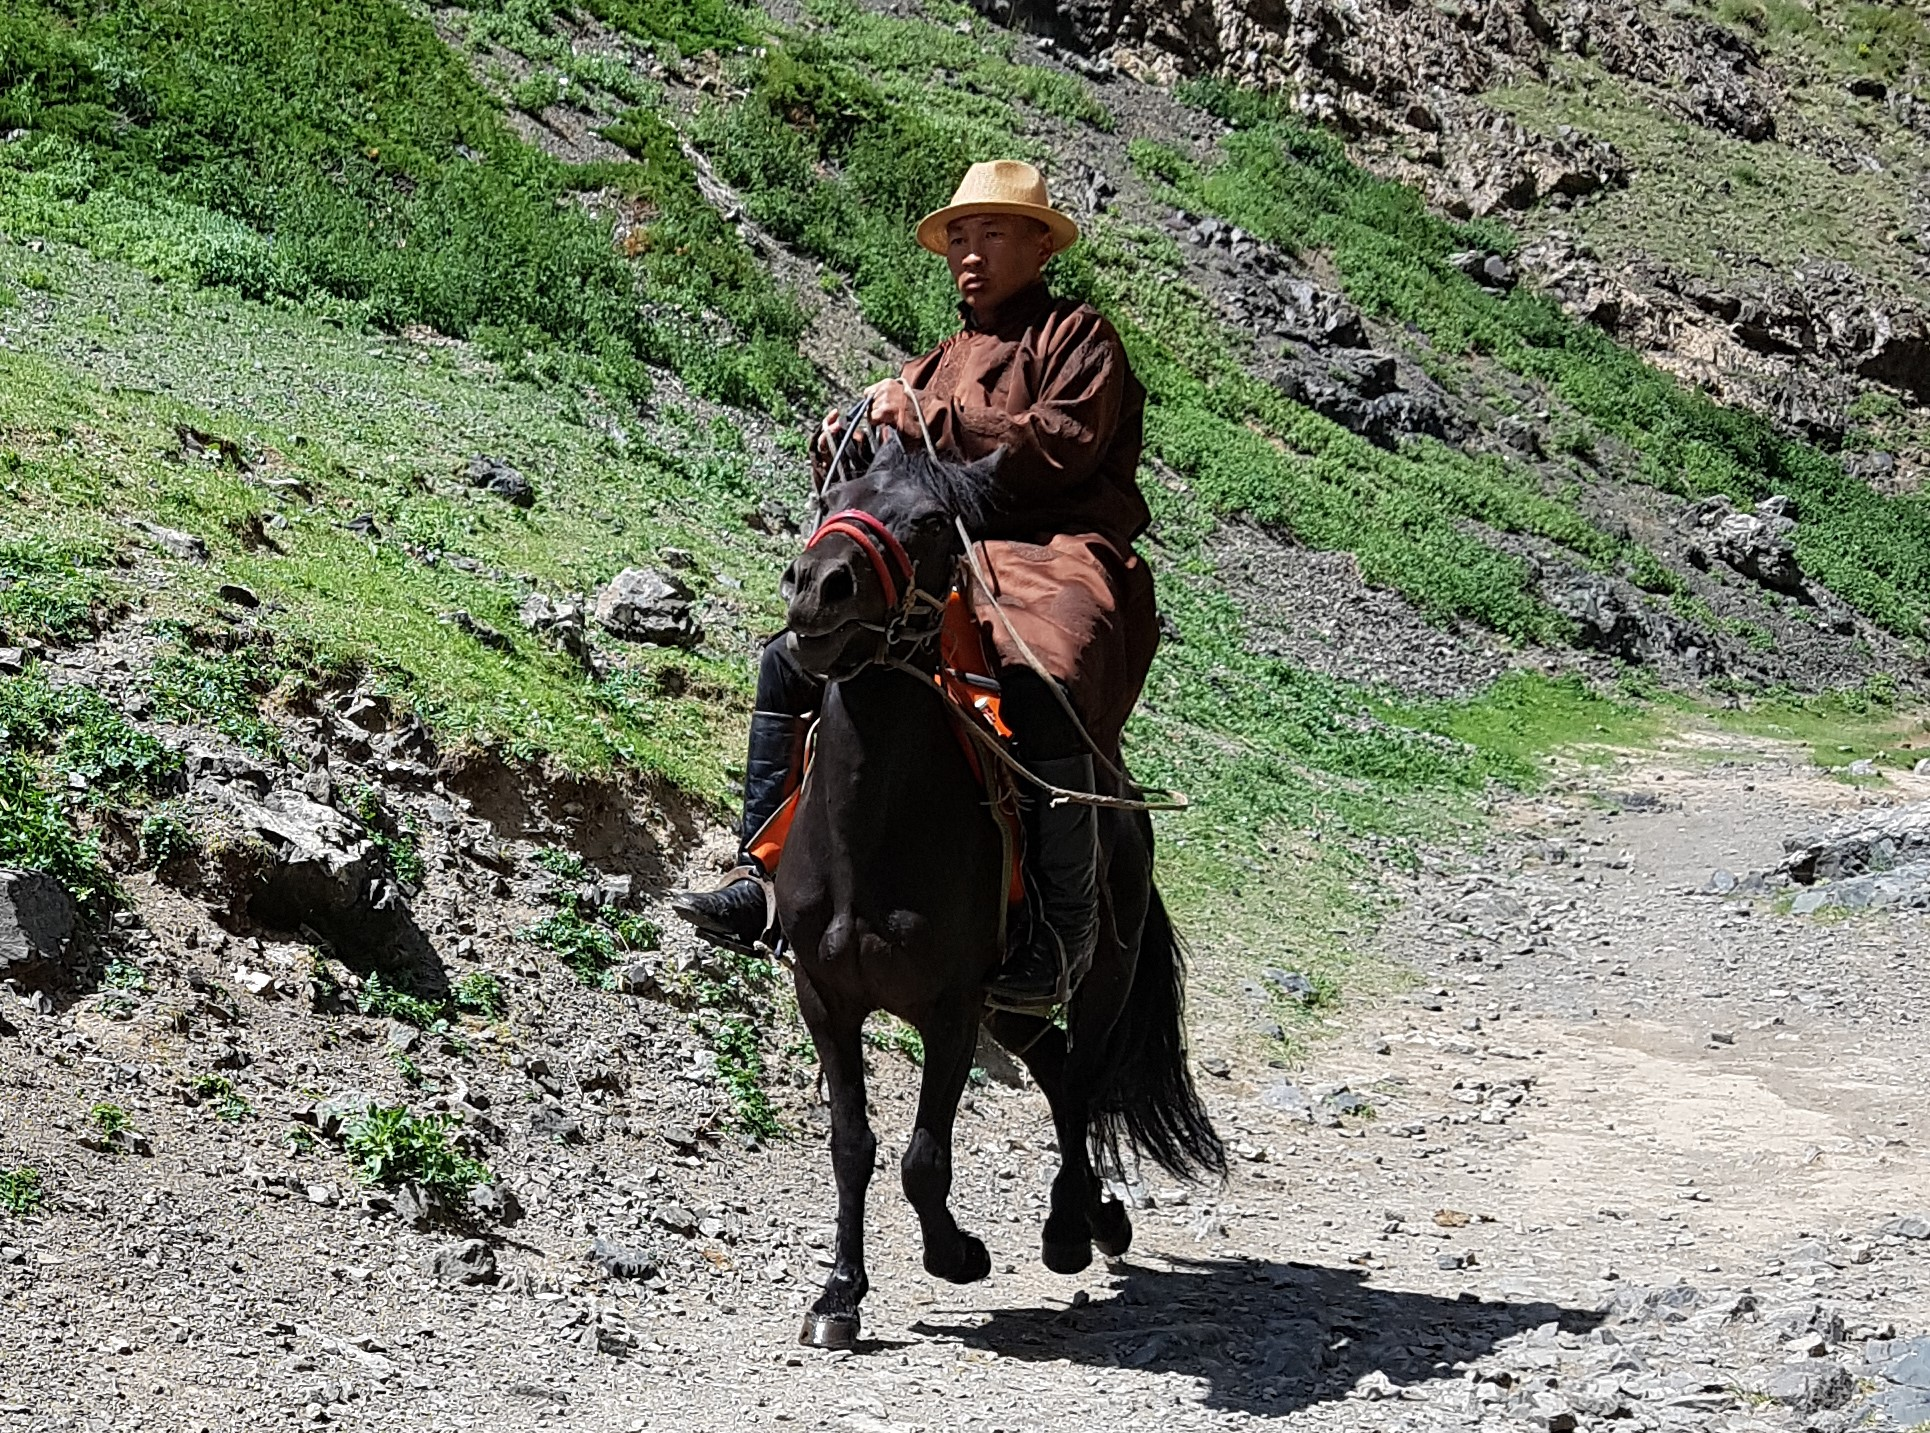 A lonely herder on his horse in the Yolo gorge